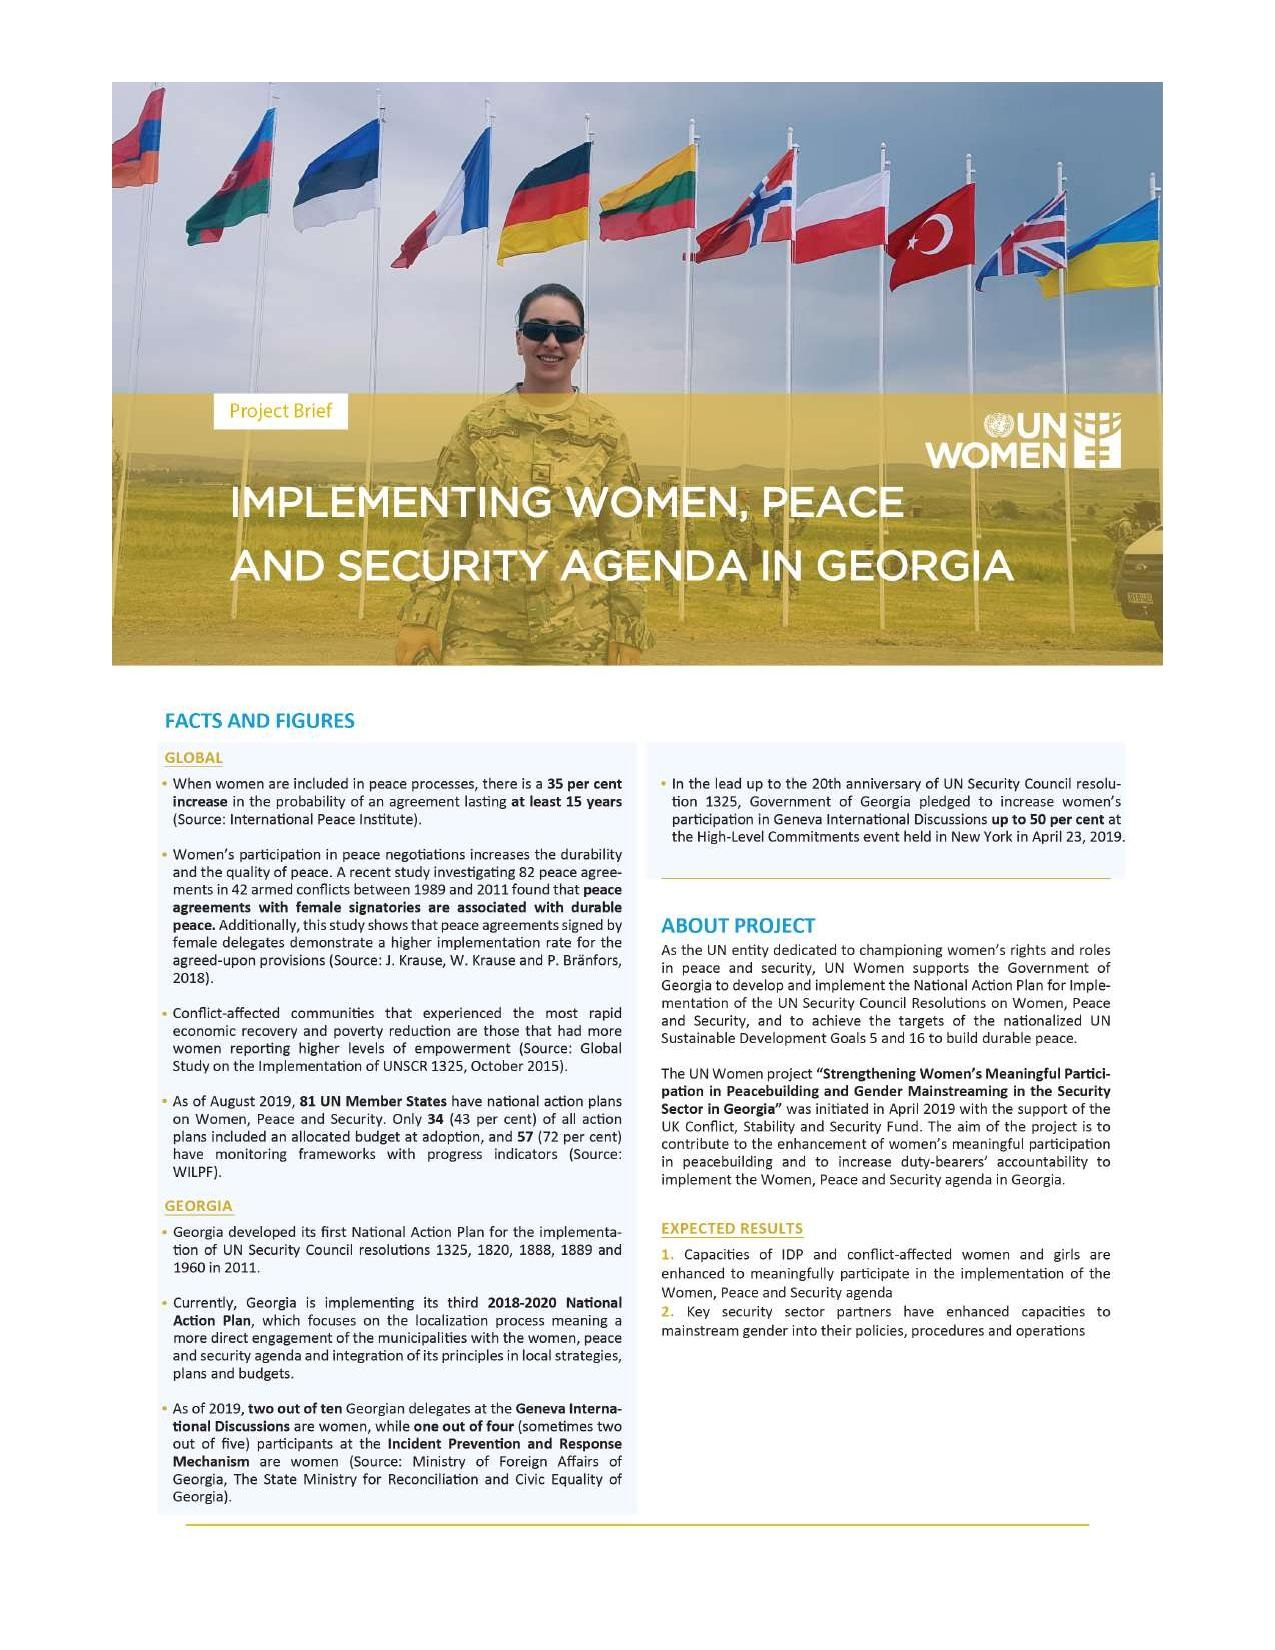 Strengthening Women's Meaningful Participation in Peacebuilding and Gender Mainstreaming in the Security Sector in Georgia